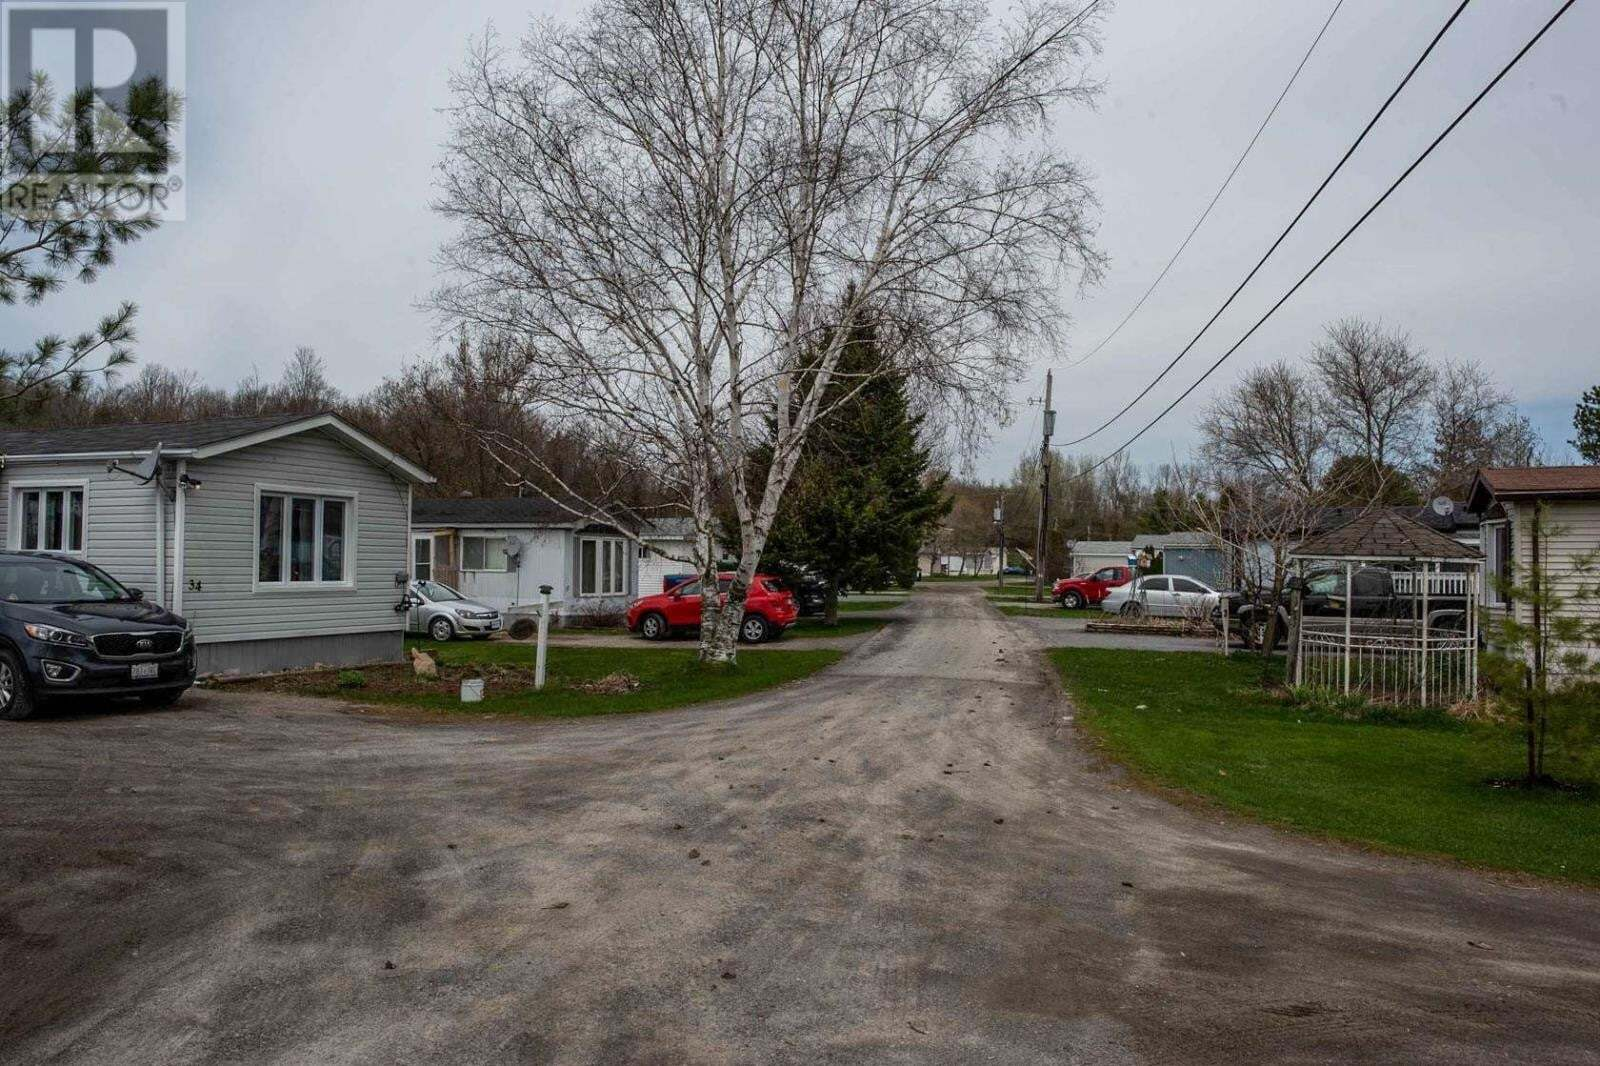 Home for sale at 227 Big Hill Rd Seeley's Bay Ontario - MLS: K20002389